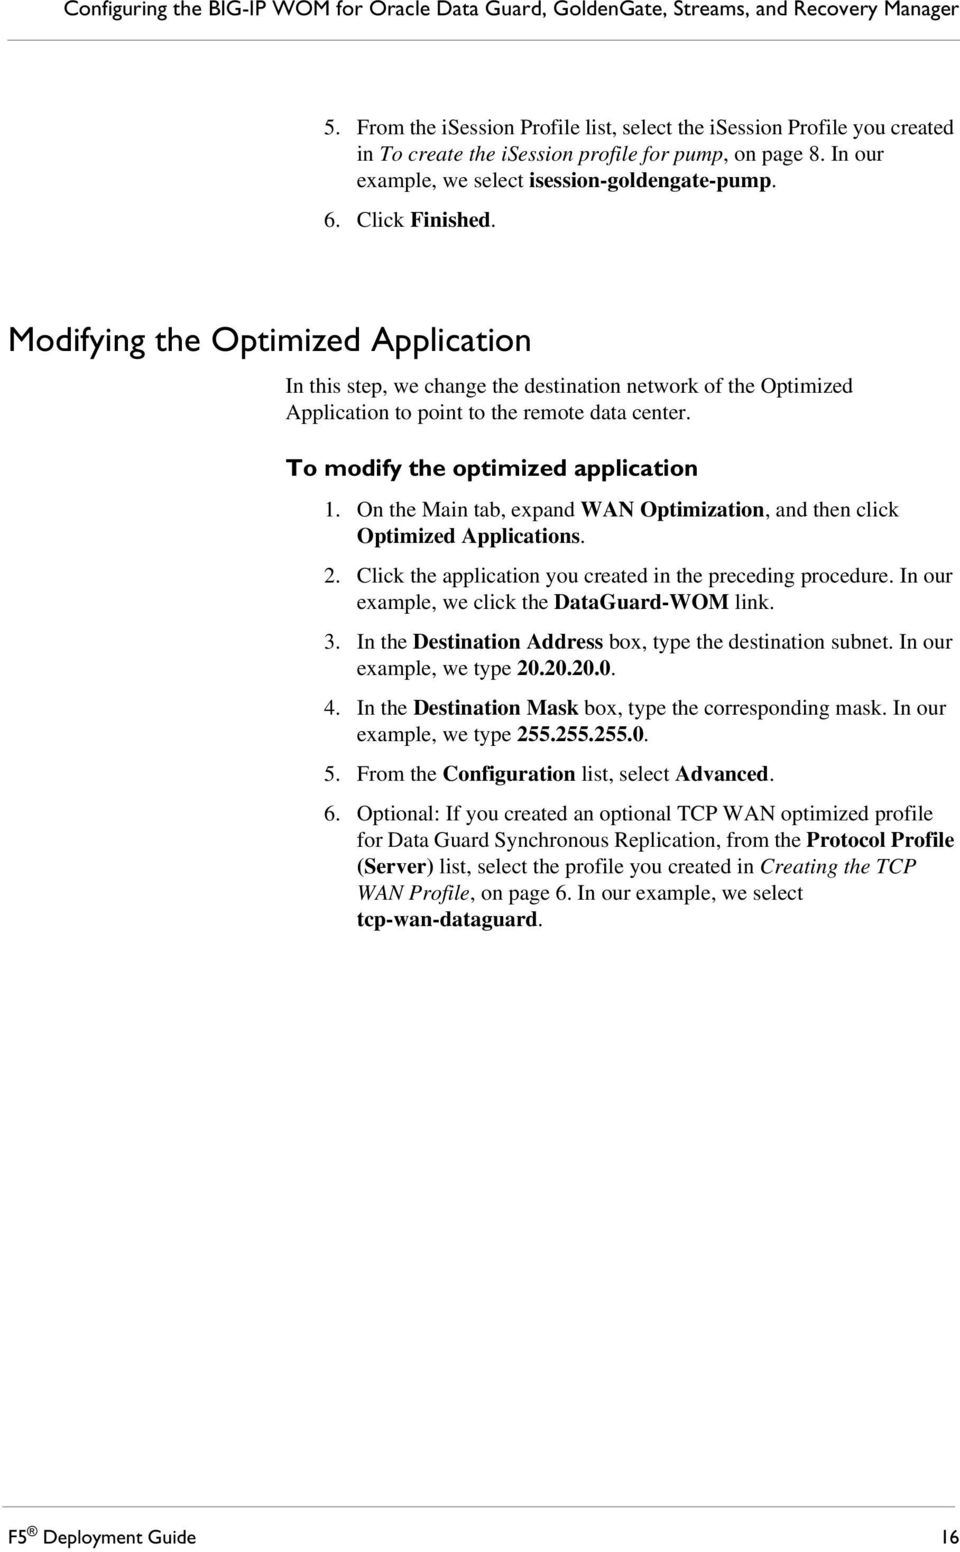 Modifying the Optimized Application In this step, we change the destination network of the Optimized Application to point to the remote data center. To modify the optimized application 1.